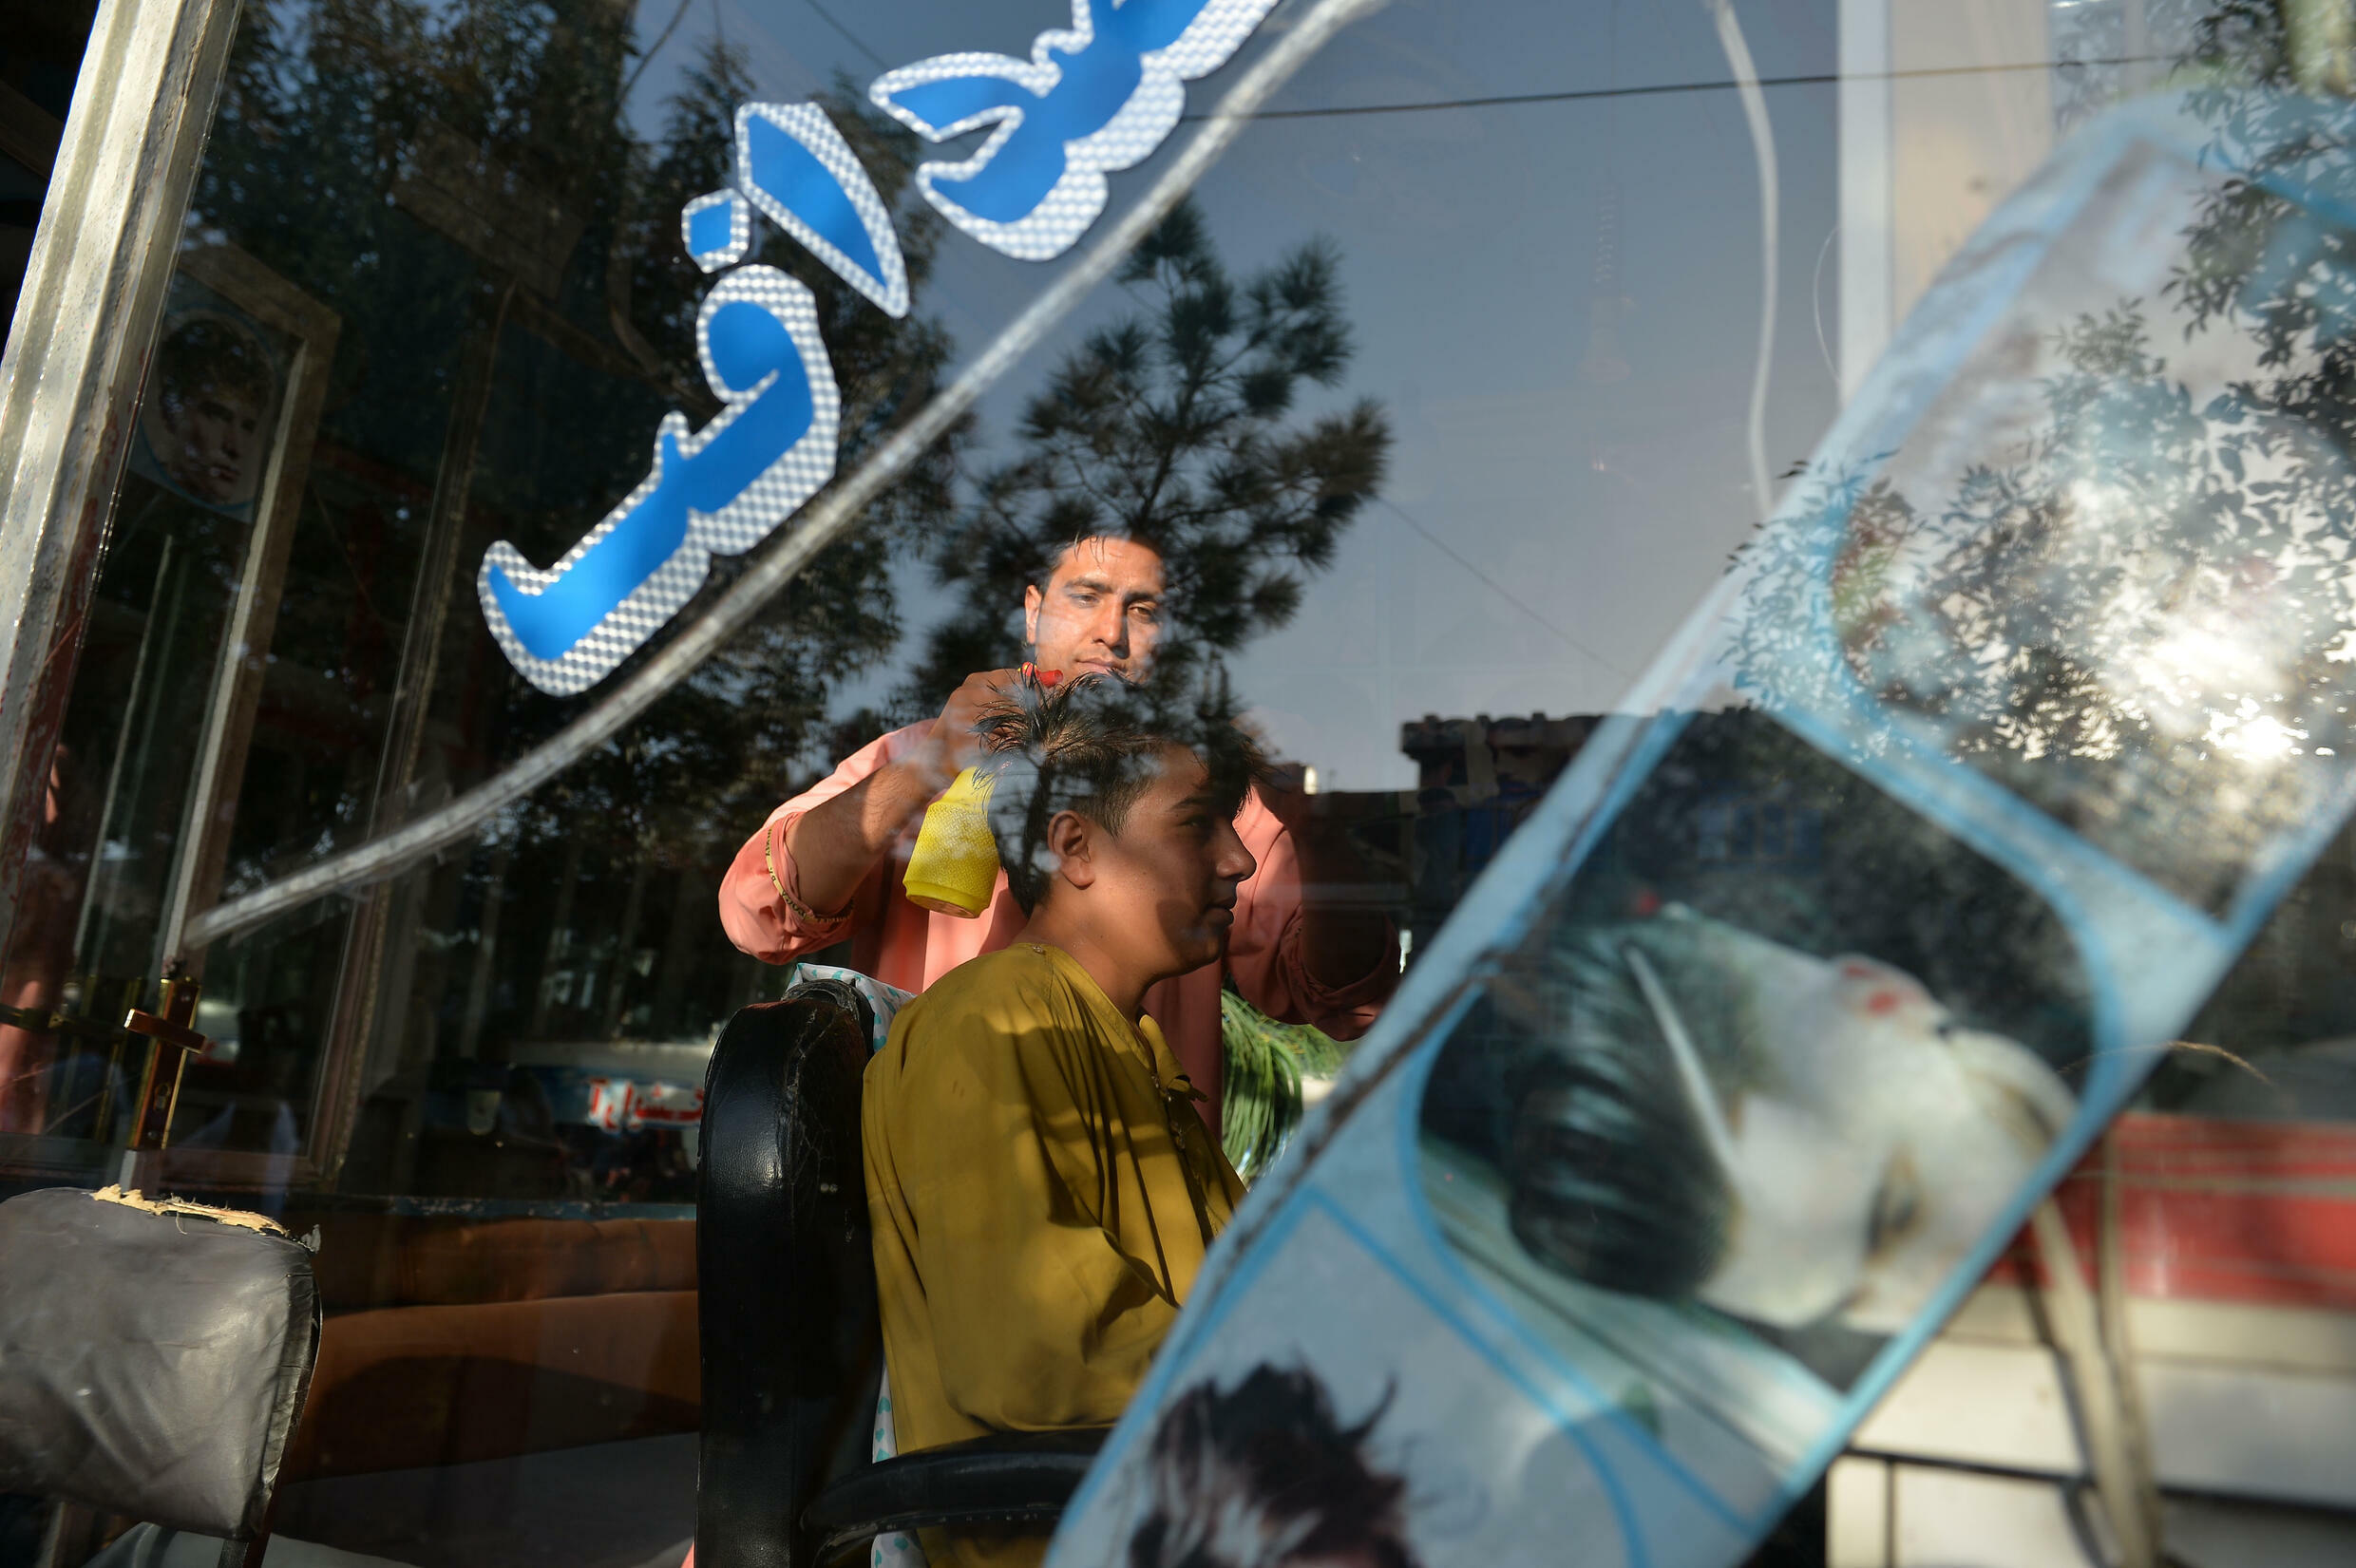 During the Taliban's rule from 1996 to 2001, hardliners banned flamboyant hairstyles and insisted that men grow beards.